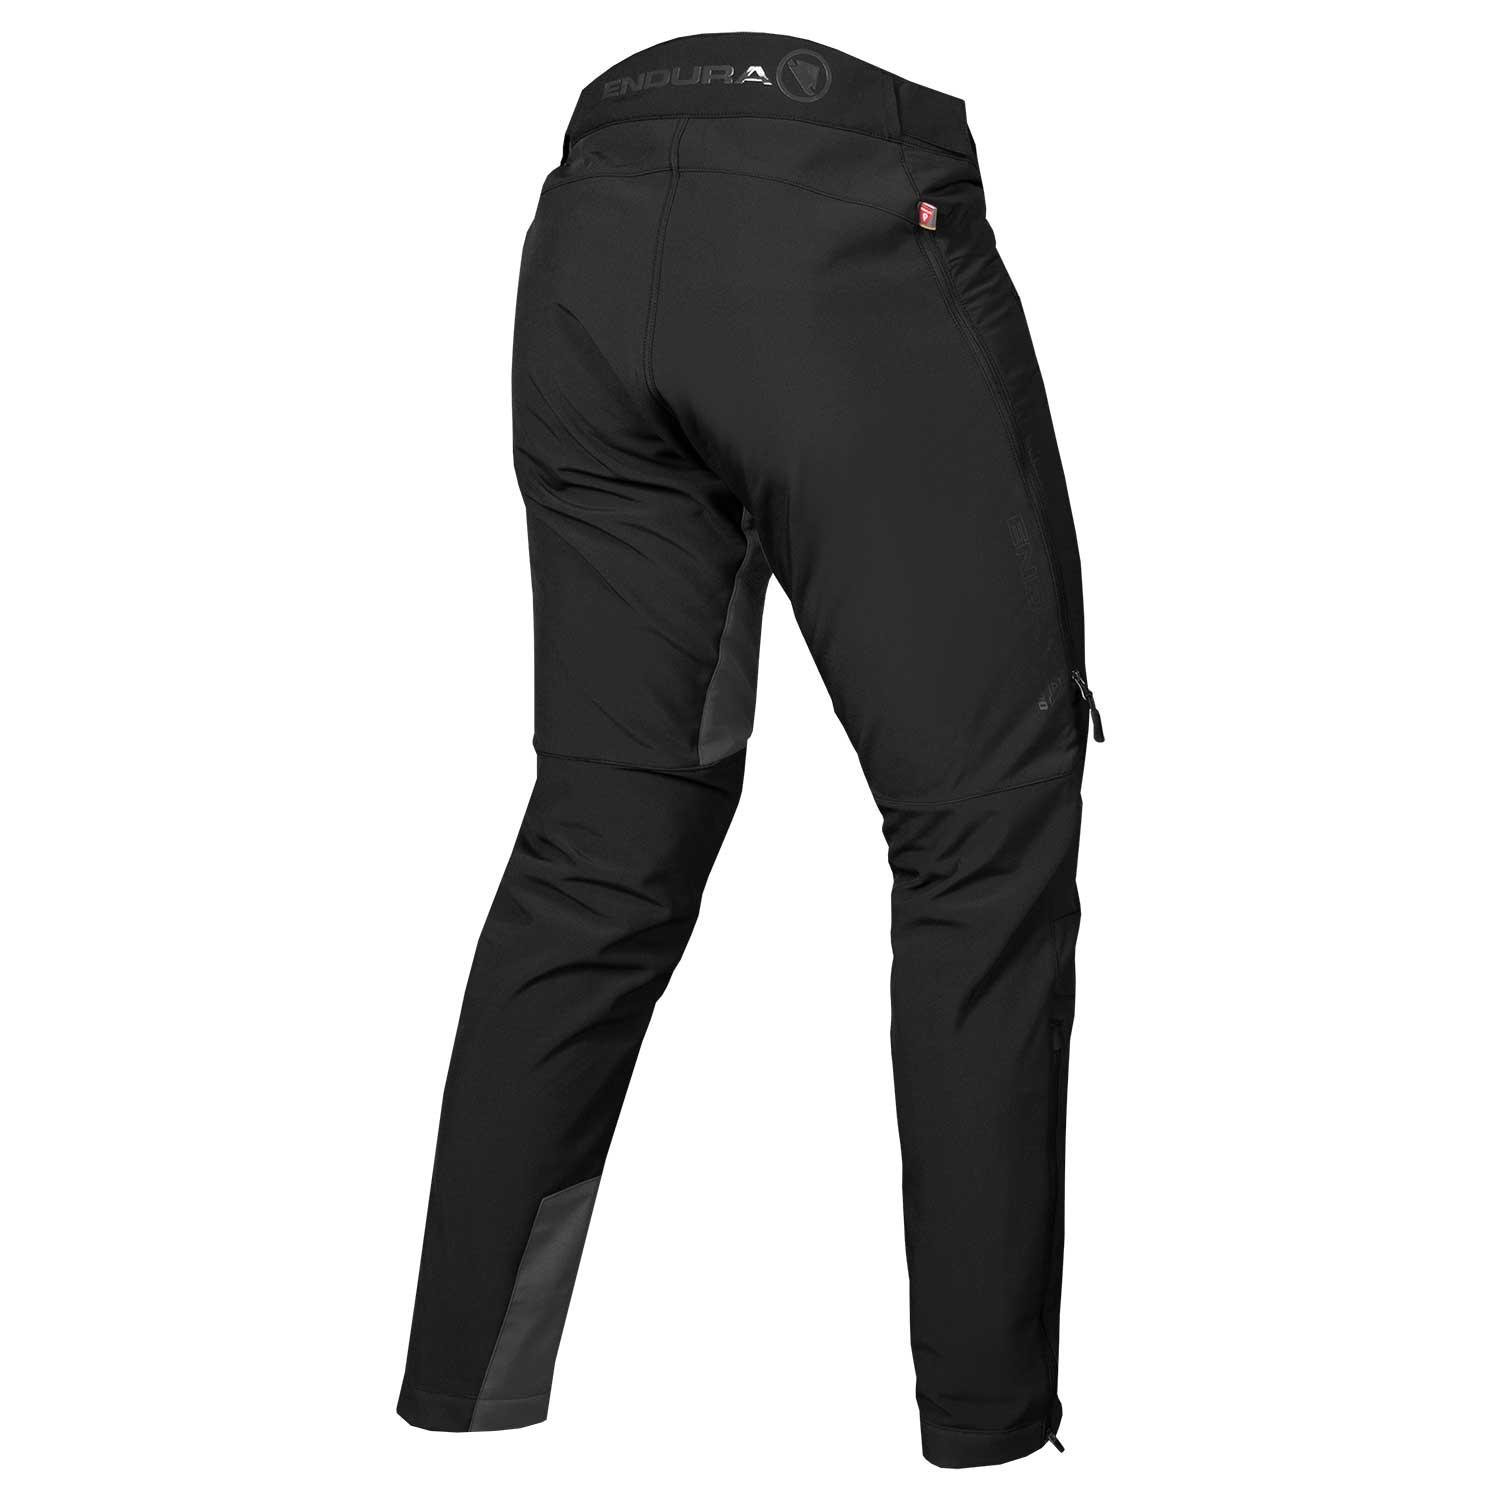 | Endura MTB fietsbroek baggy lang Heren Zwart / MT500 Freezing Point Trousers: Zwart